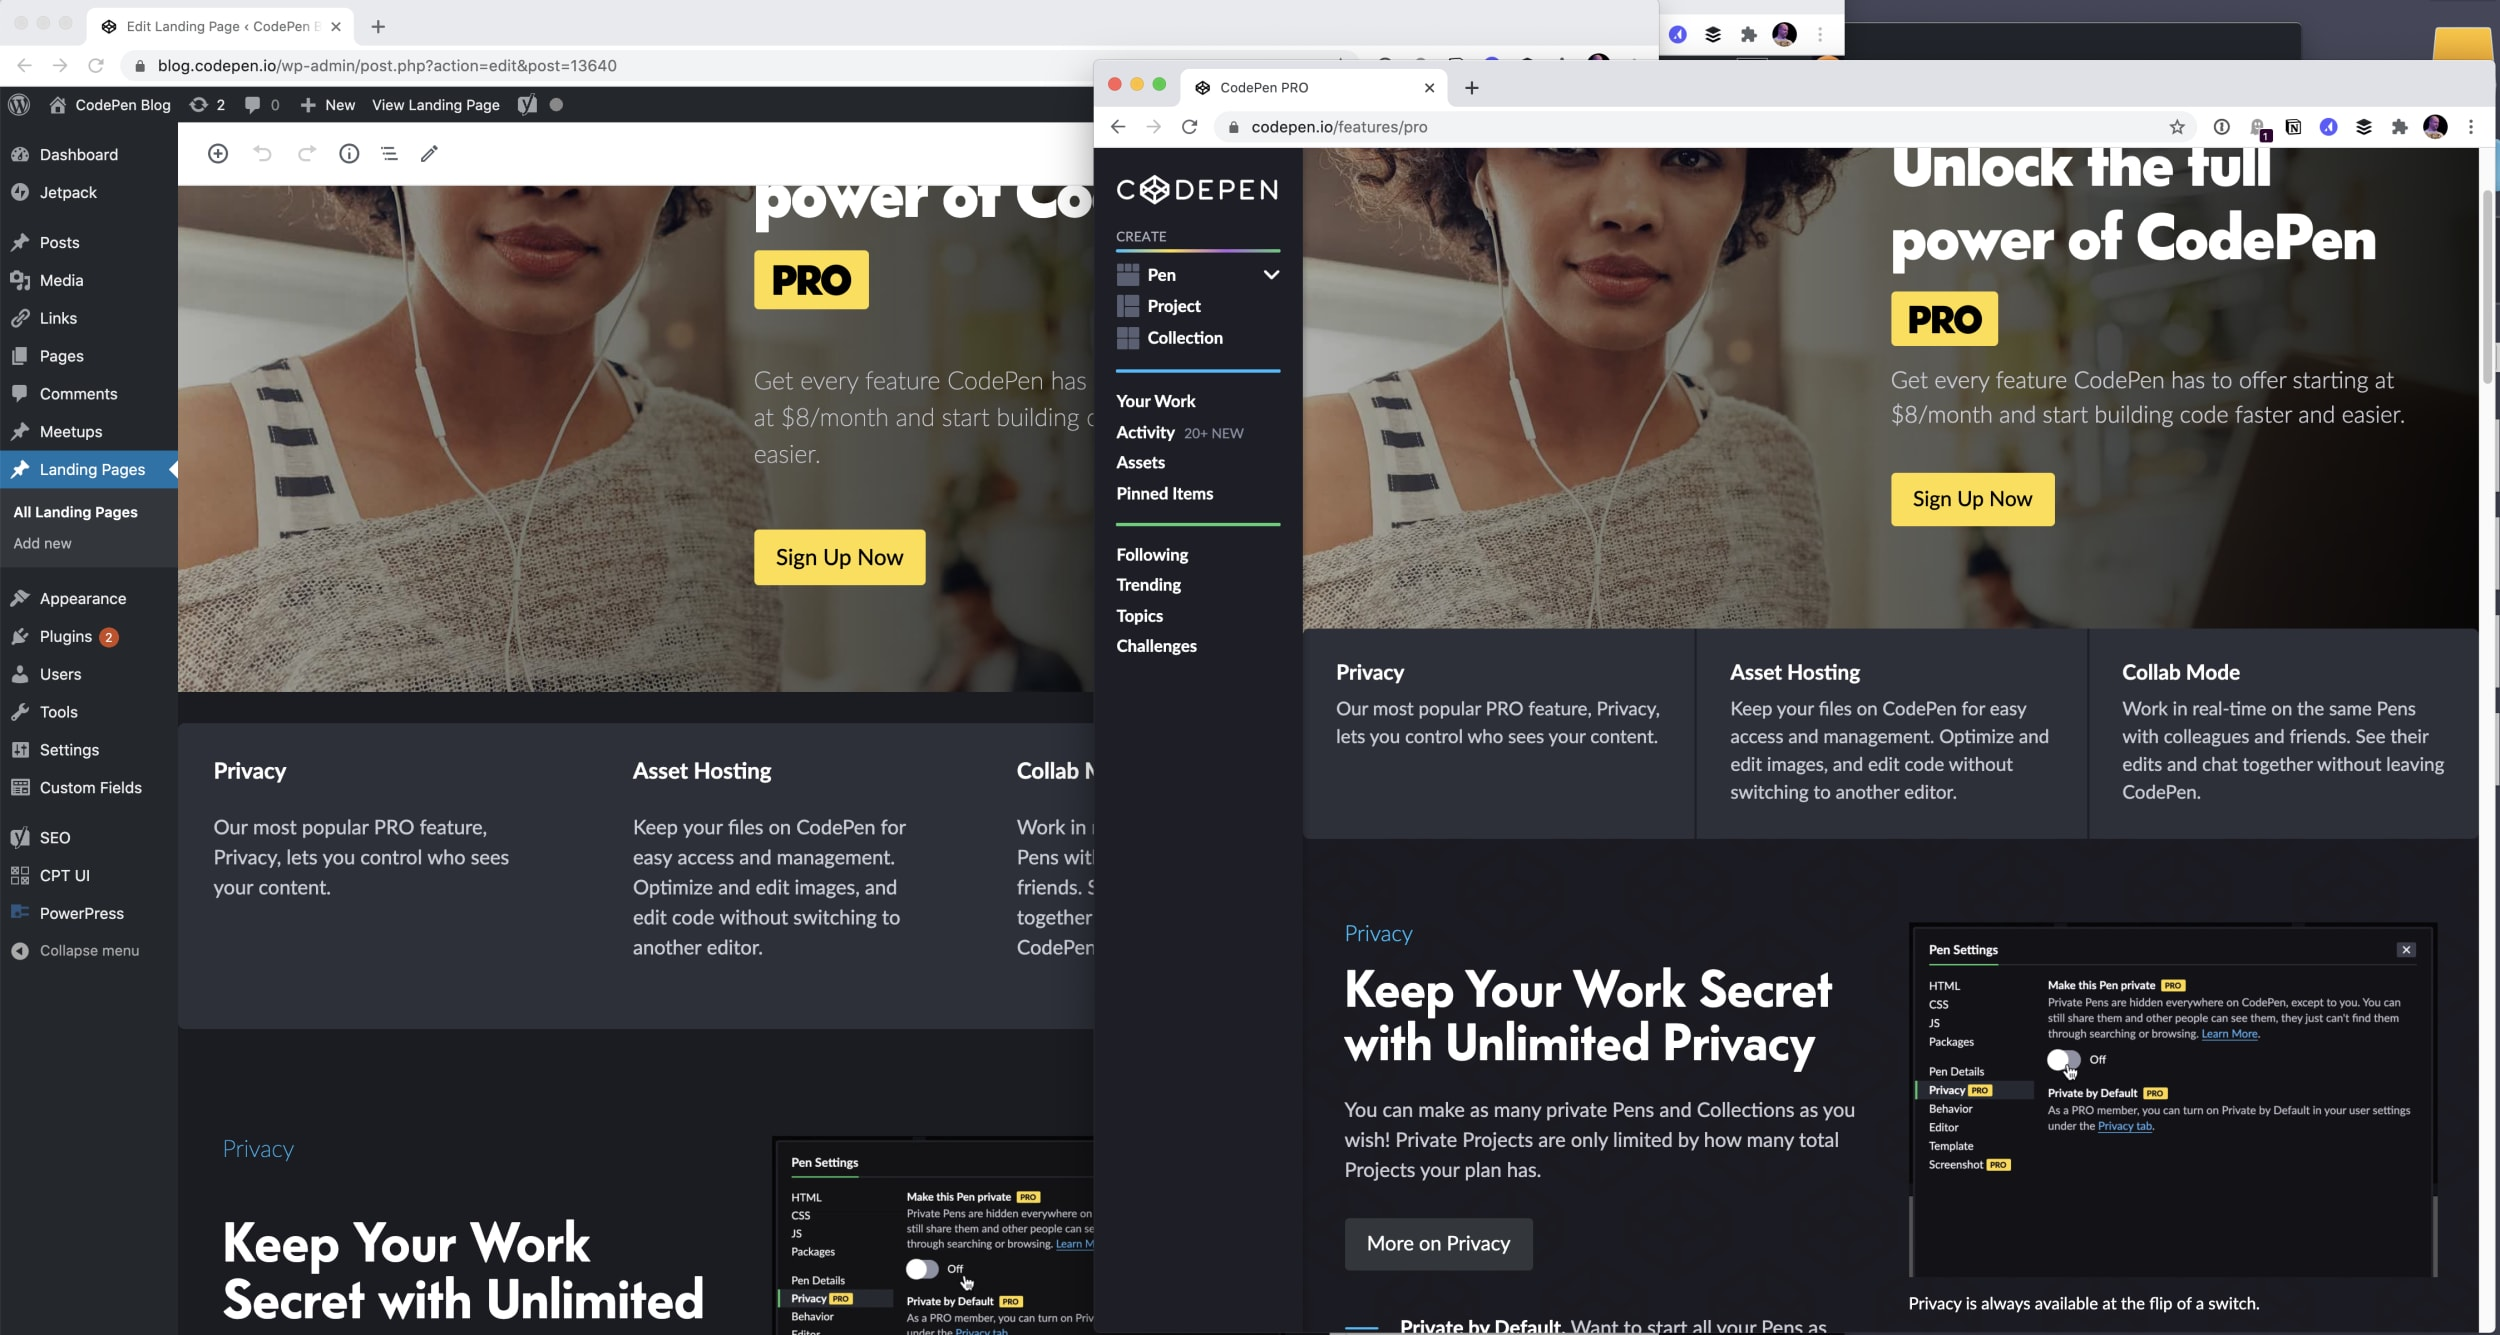 WordPress on the left, Landing Page on Right looking almost identical